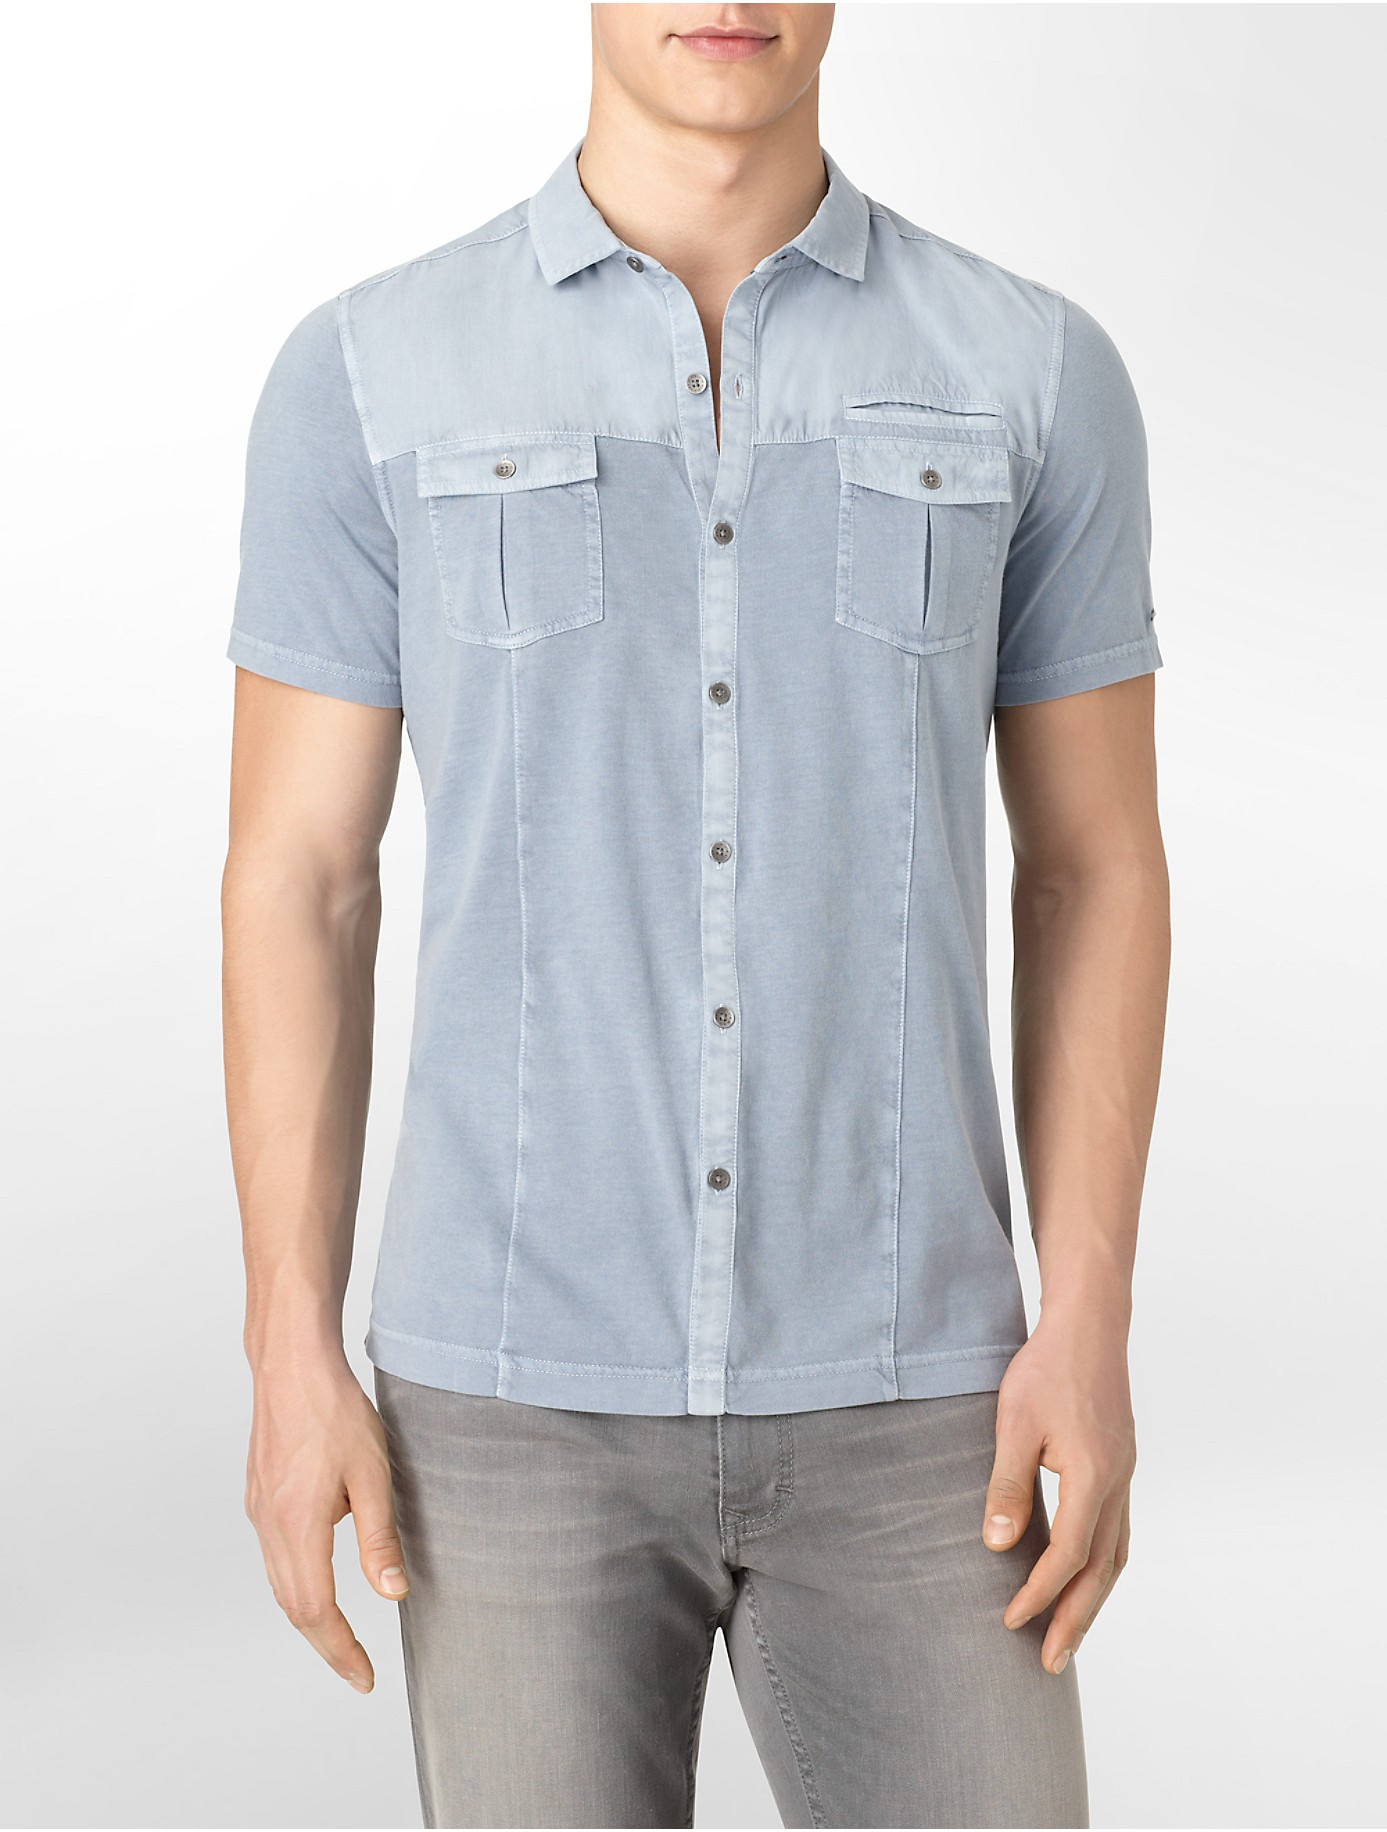 Calvin klein jeans slim fit button front cotton polo shirt for Polo shirts without buttons